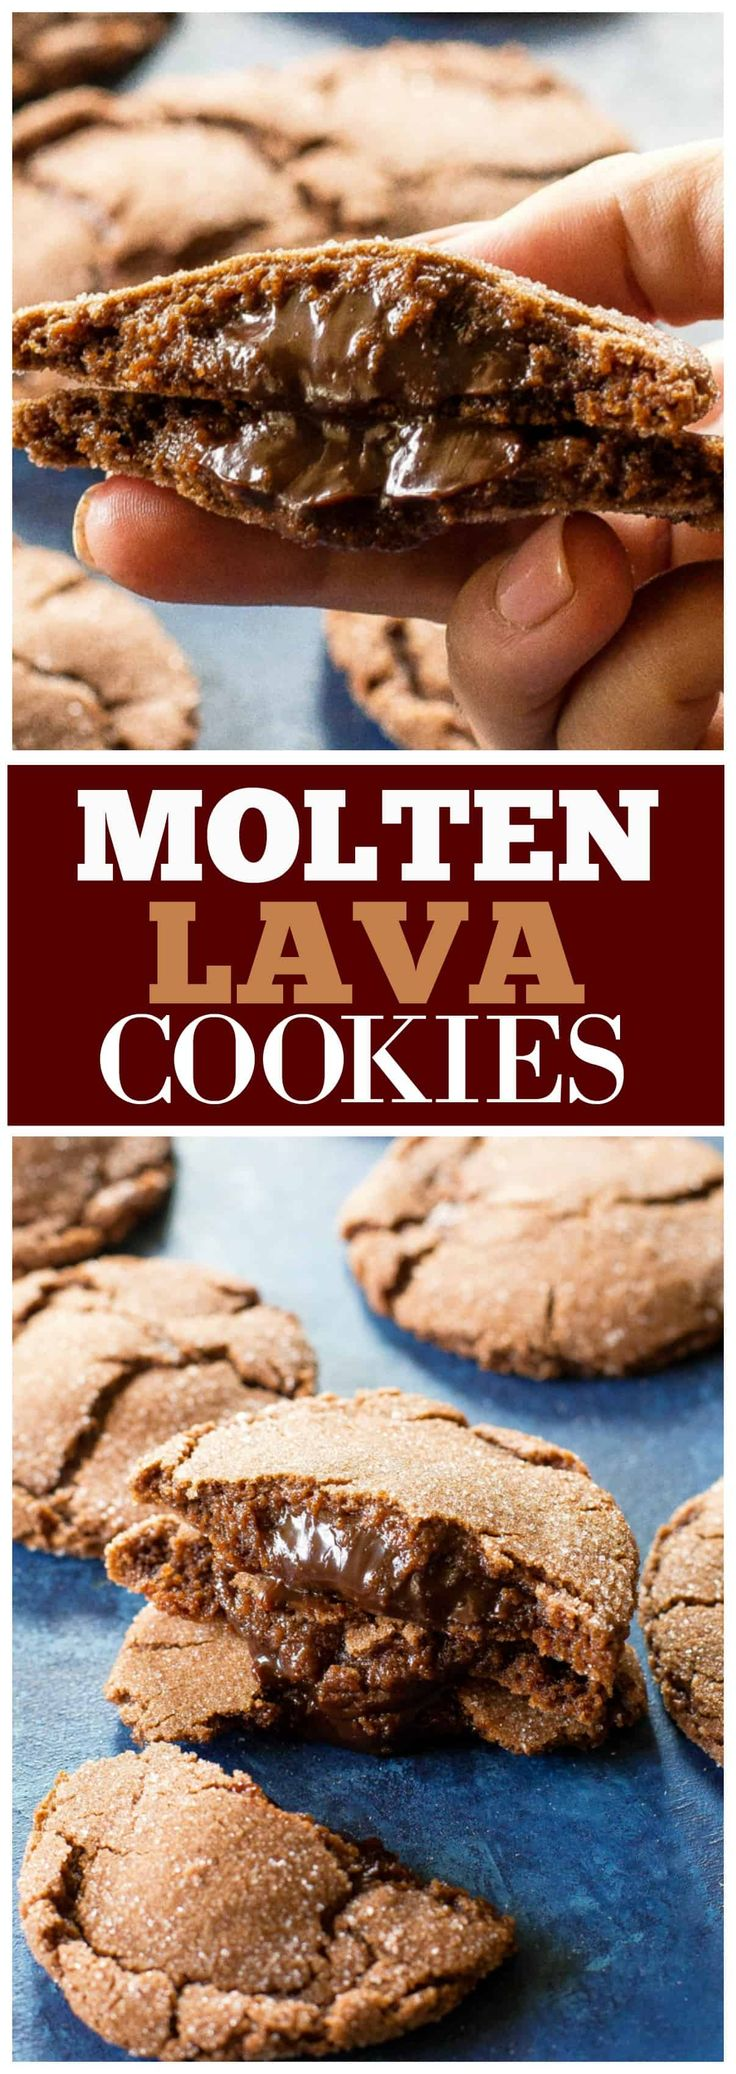 These Molten Lava Cookies have a crisp chocolate cookie on the outside and a gooey chocolate center inside. Chocolate lovers will love this cookie. the-girl-who-ate-everything.com